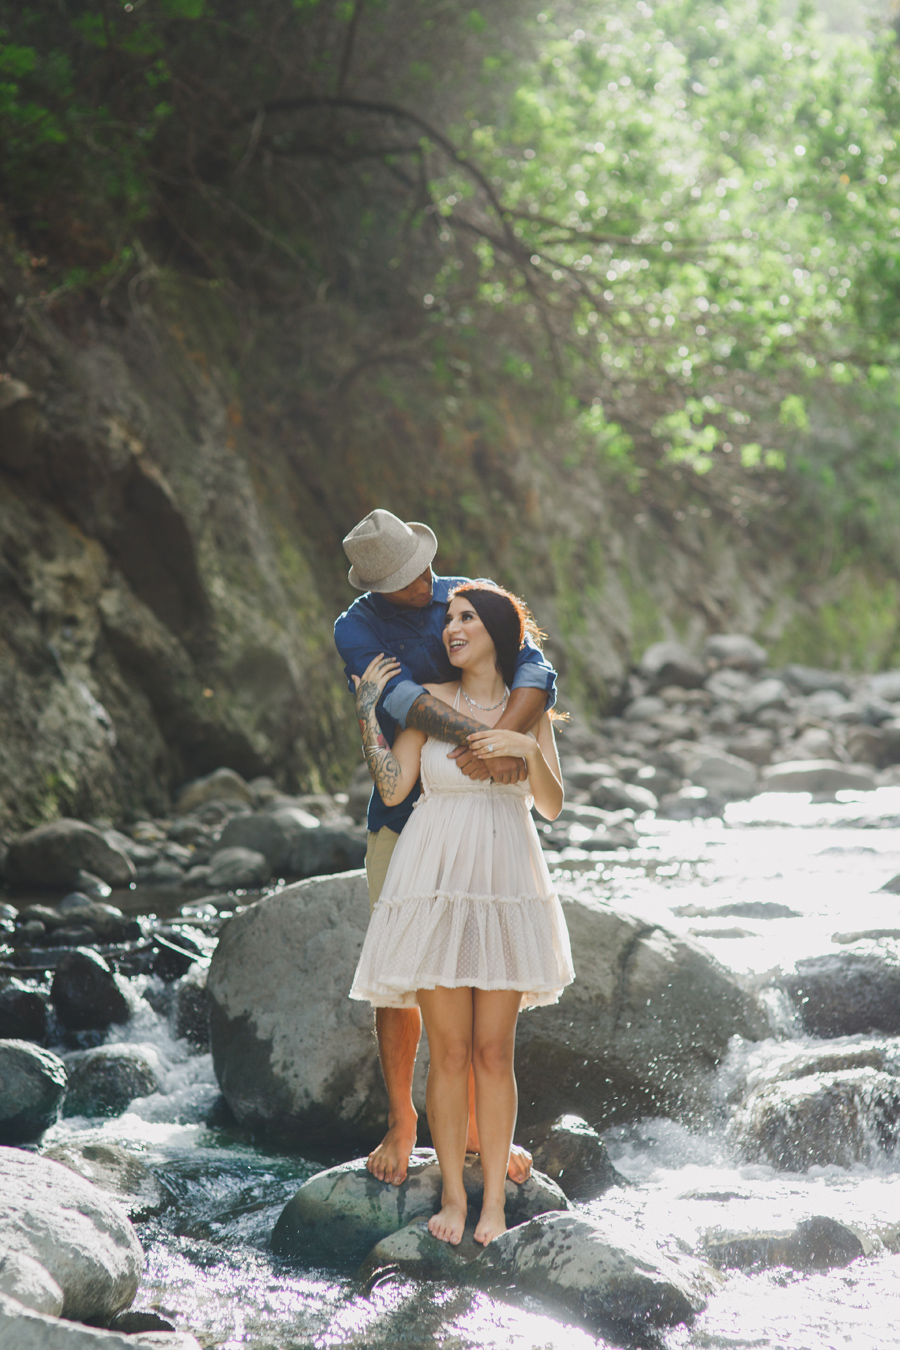 Iao Valley Engagement Photography session